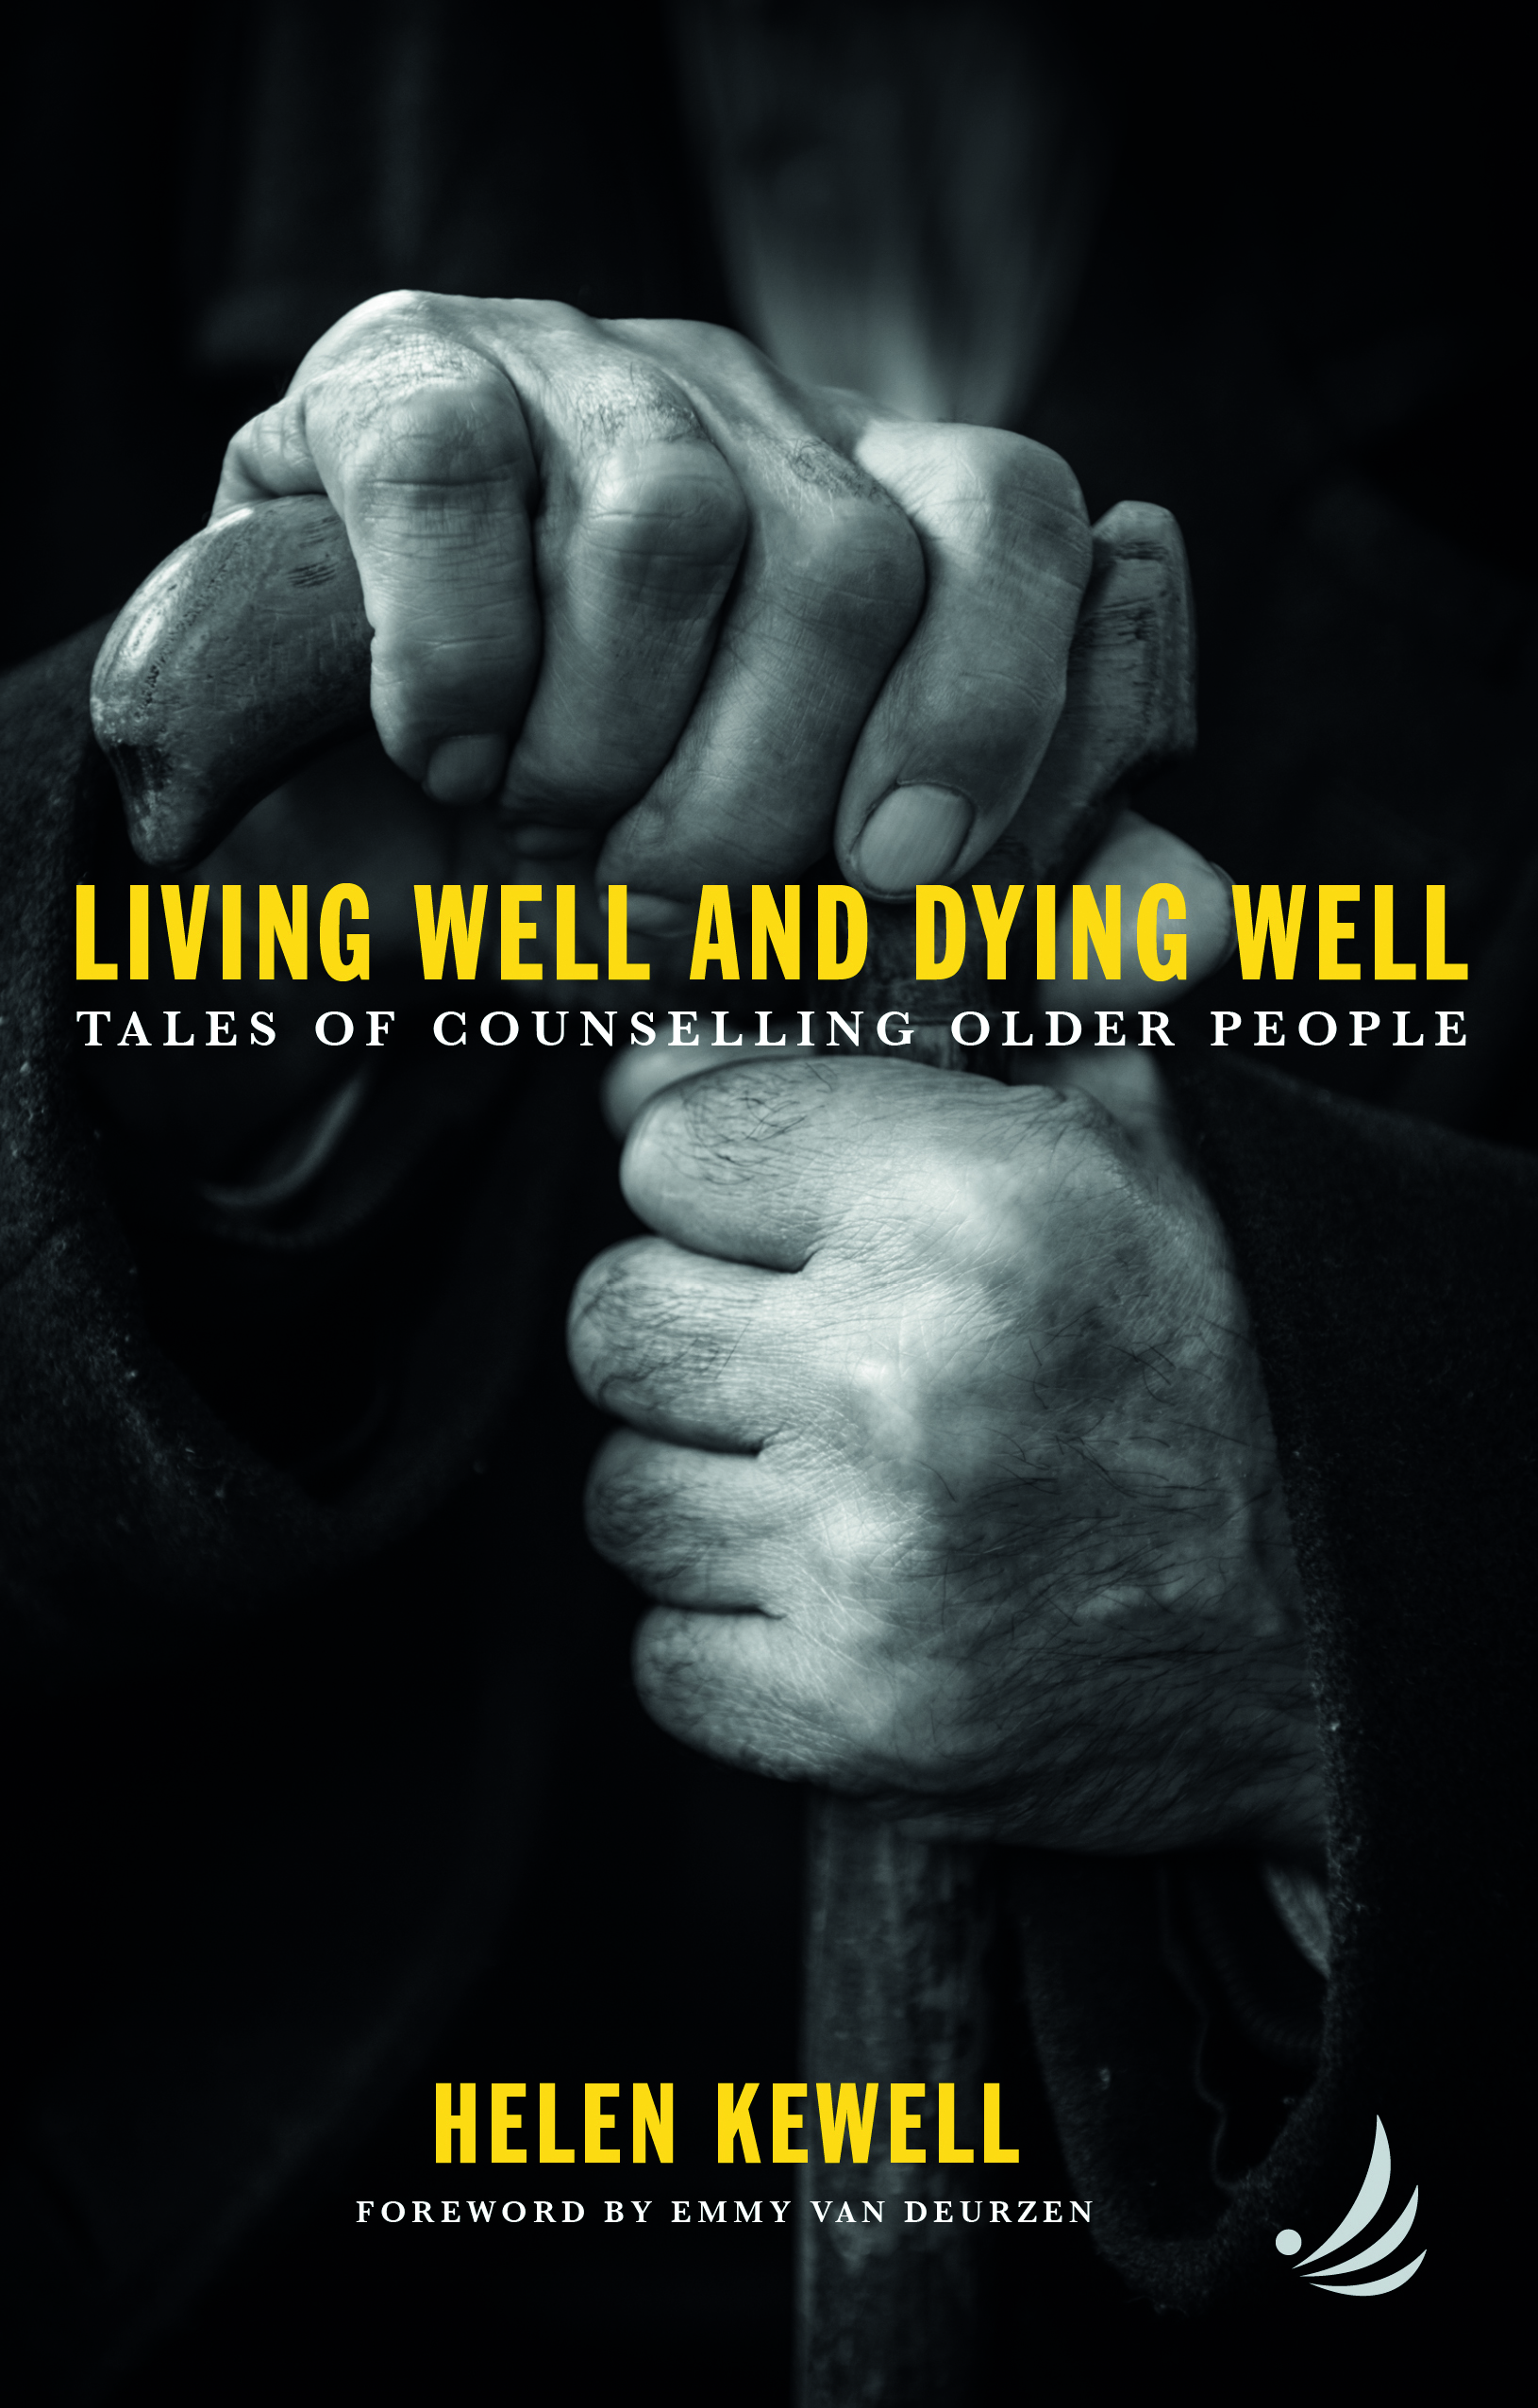 Living Well And Dying Well: Counselling Older People - Helen Kewell with Onlinevents